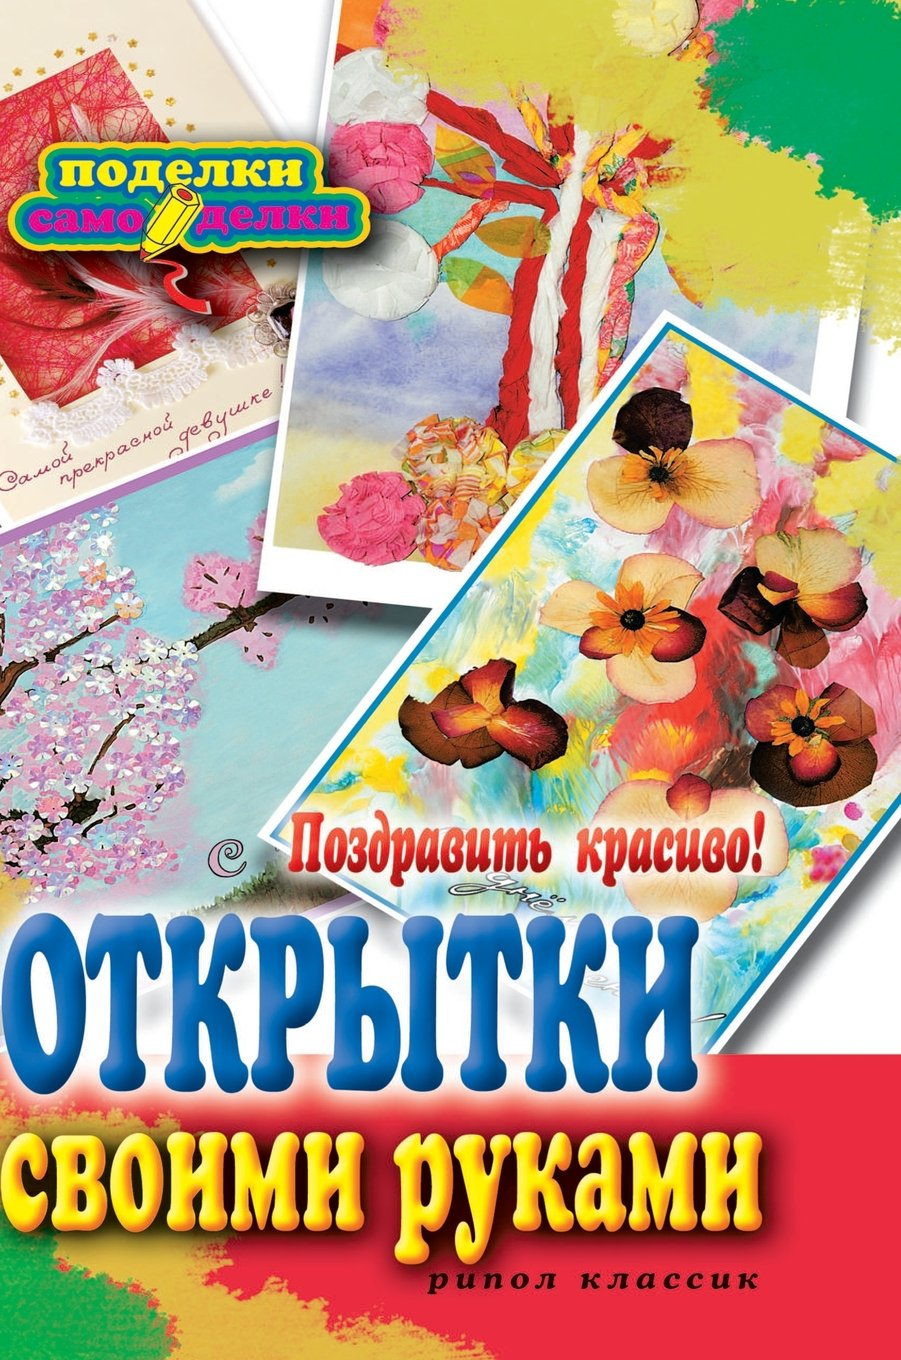 Read Online Congratulate beautiful! Postcards with their own hands (Russian Edition) pdf epub